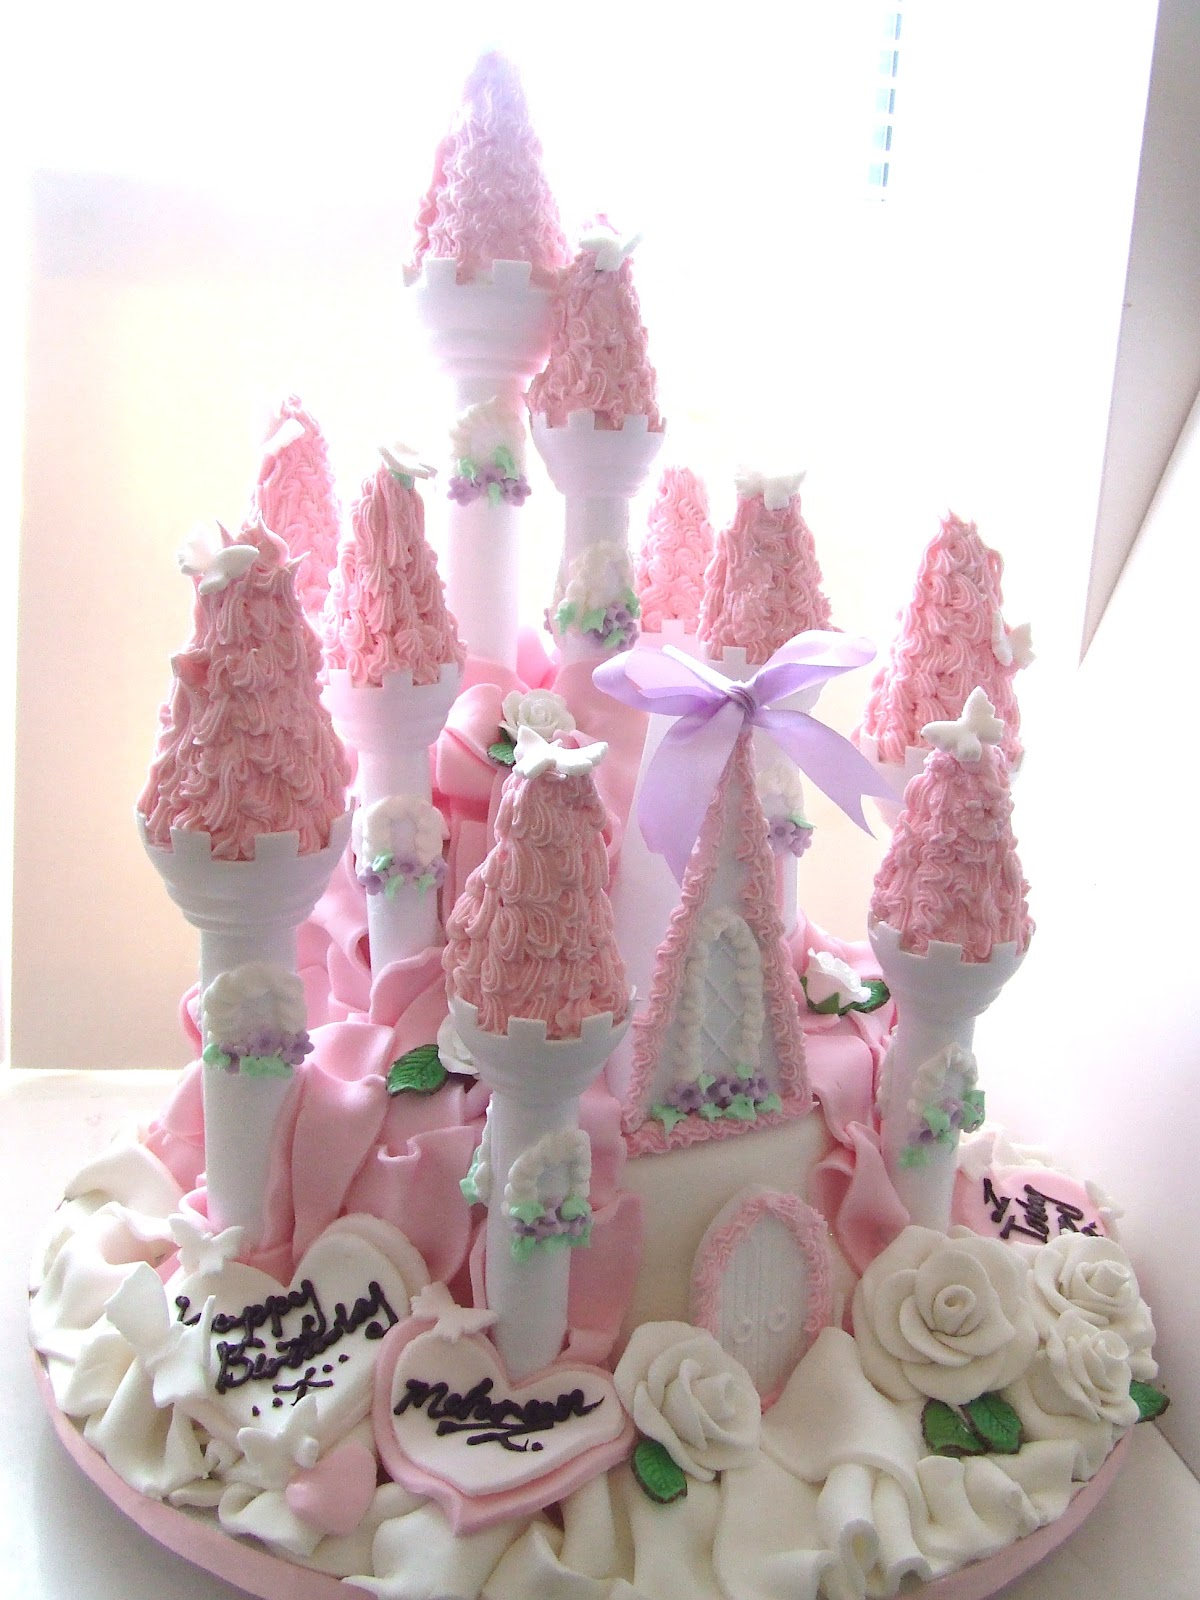 Barbie Castle Cake Images : Iced Out Company Cakes!: The Princess Castle Cake!